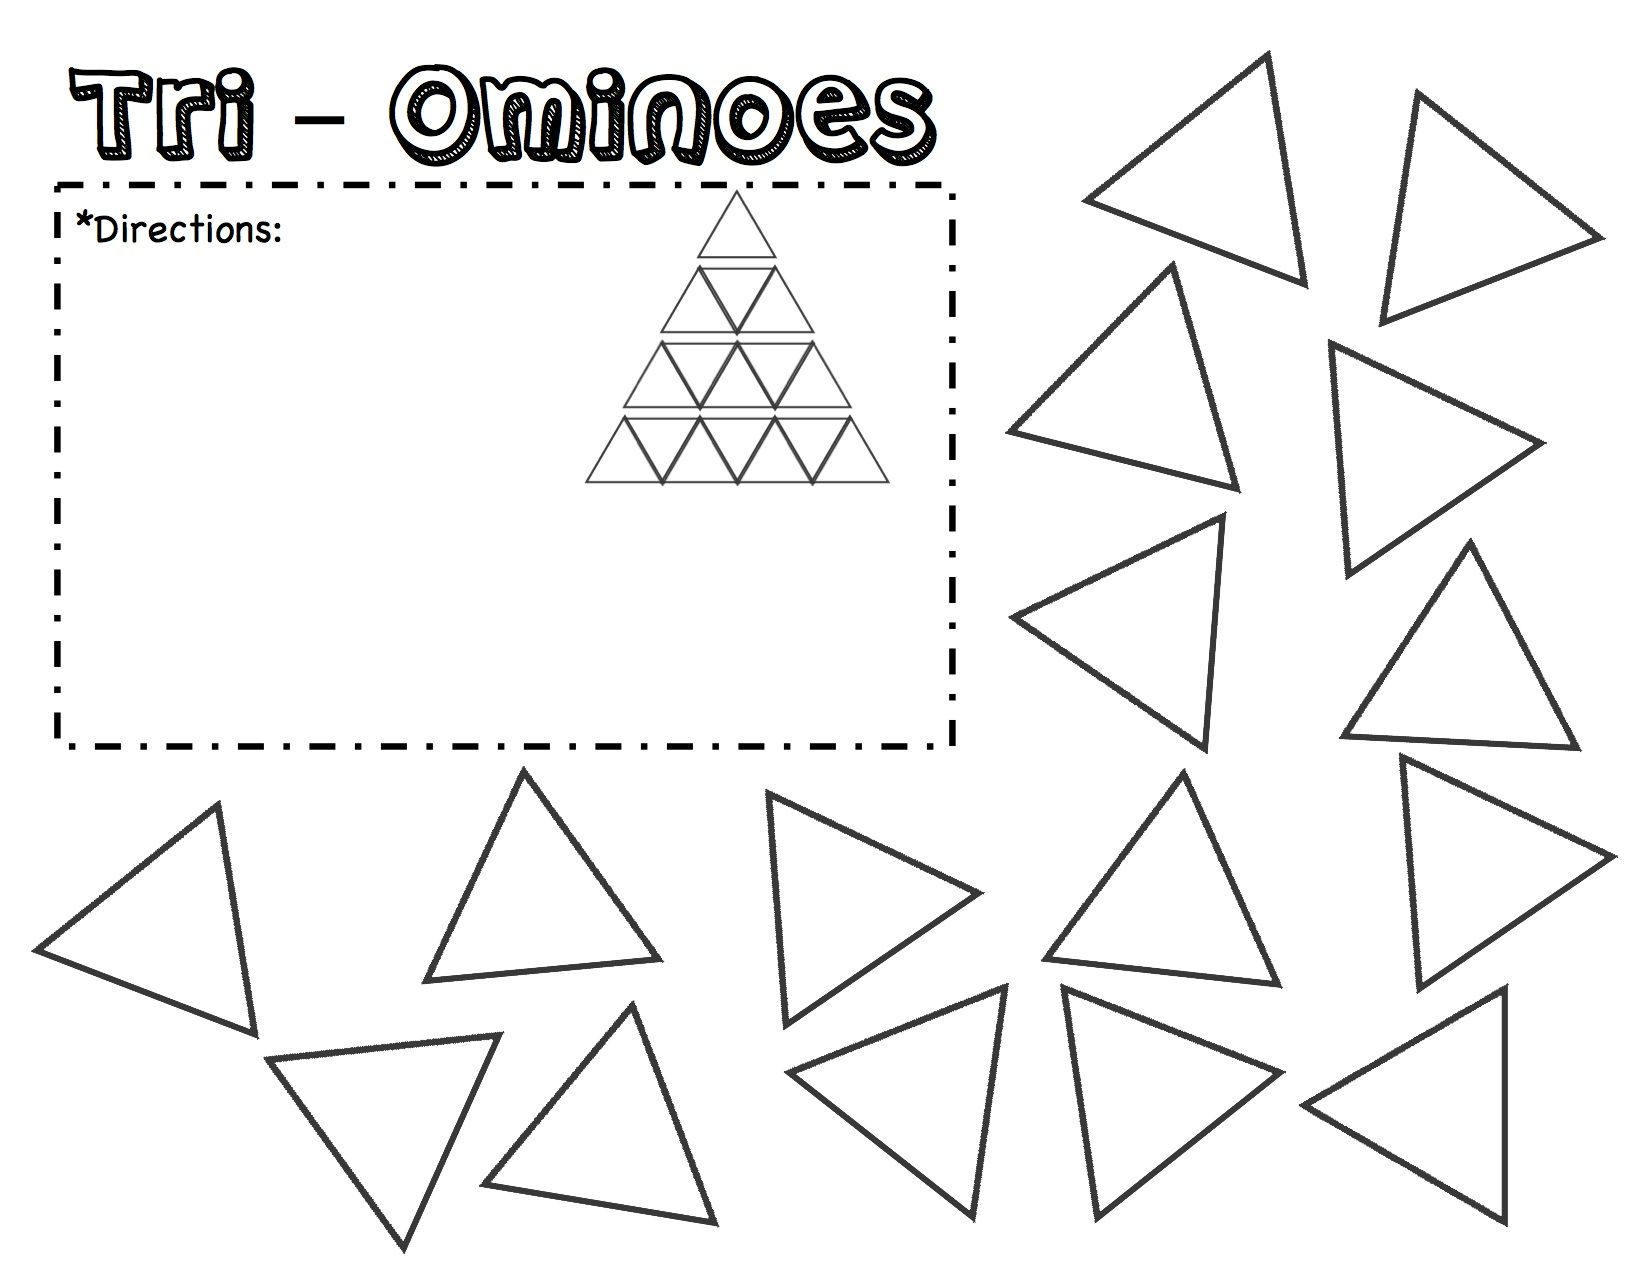 Tri-Ominoes Puzzle Template Printable. Fill in the